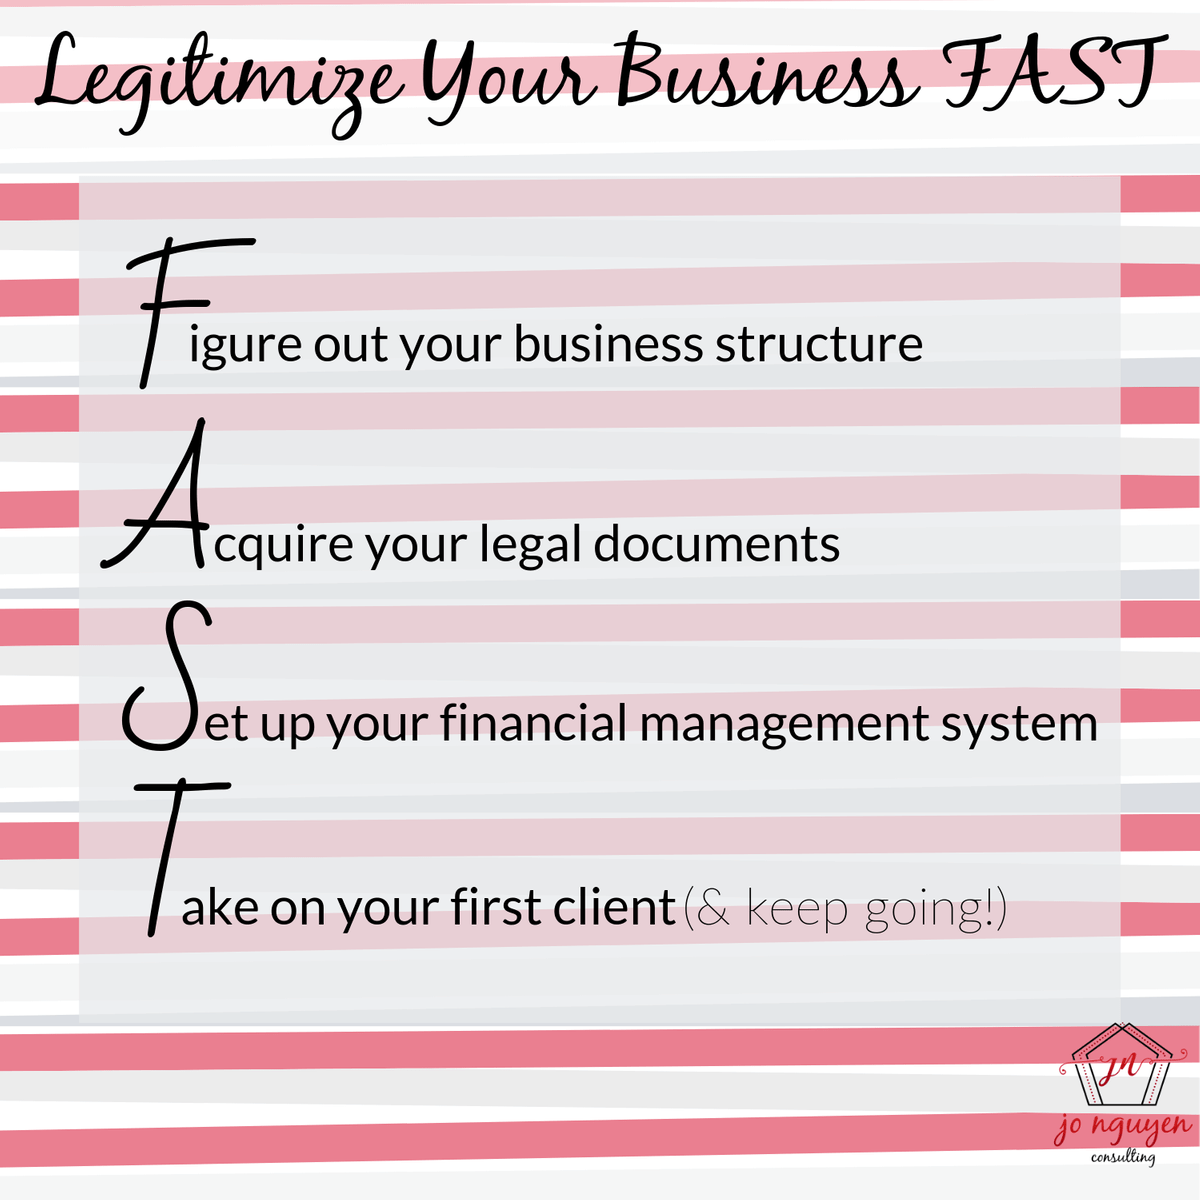 Legitimize Your Business FAST by Jo Nguyen Consulting